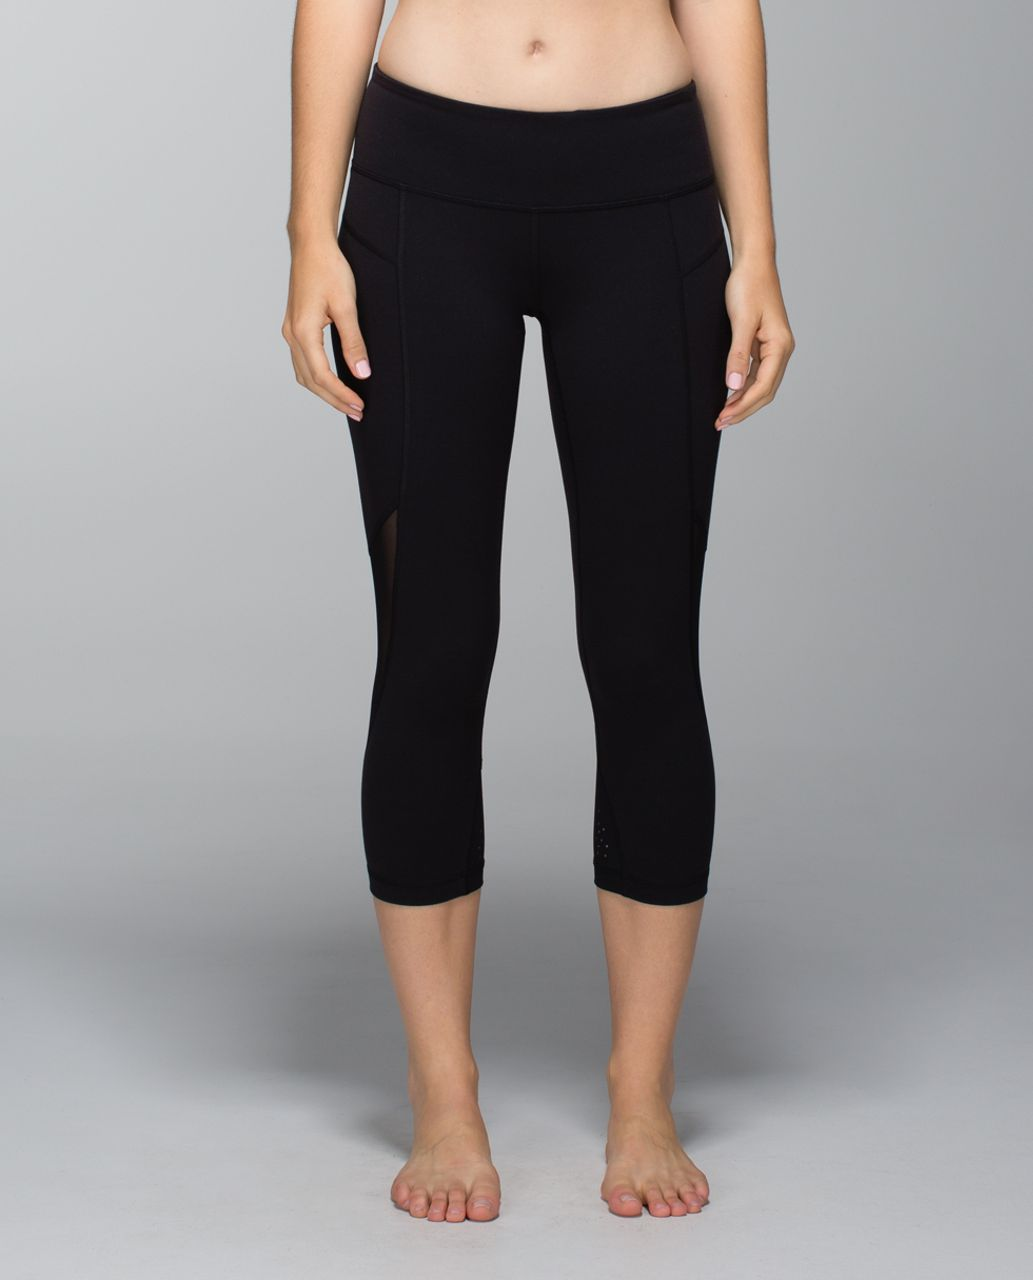 Lululemon Wunder Under Crop II *Laser-Cut - Black